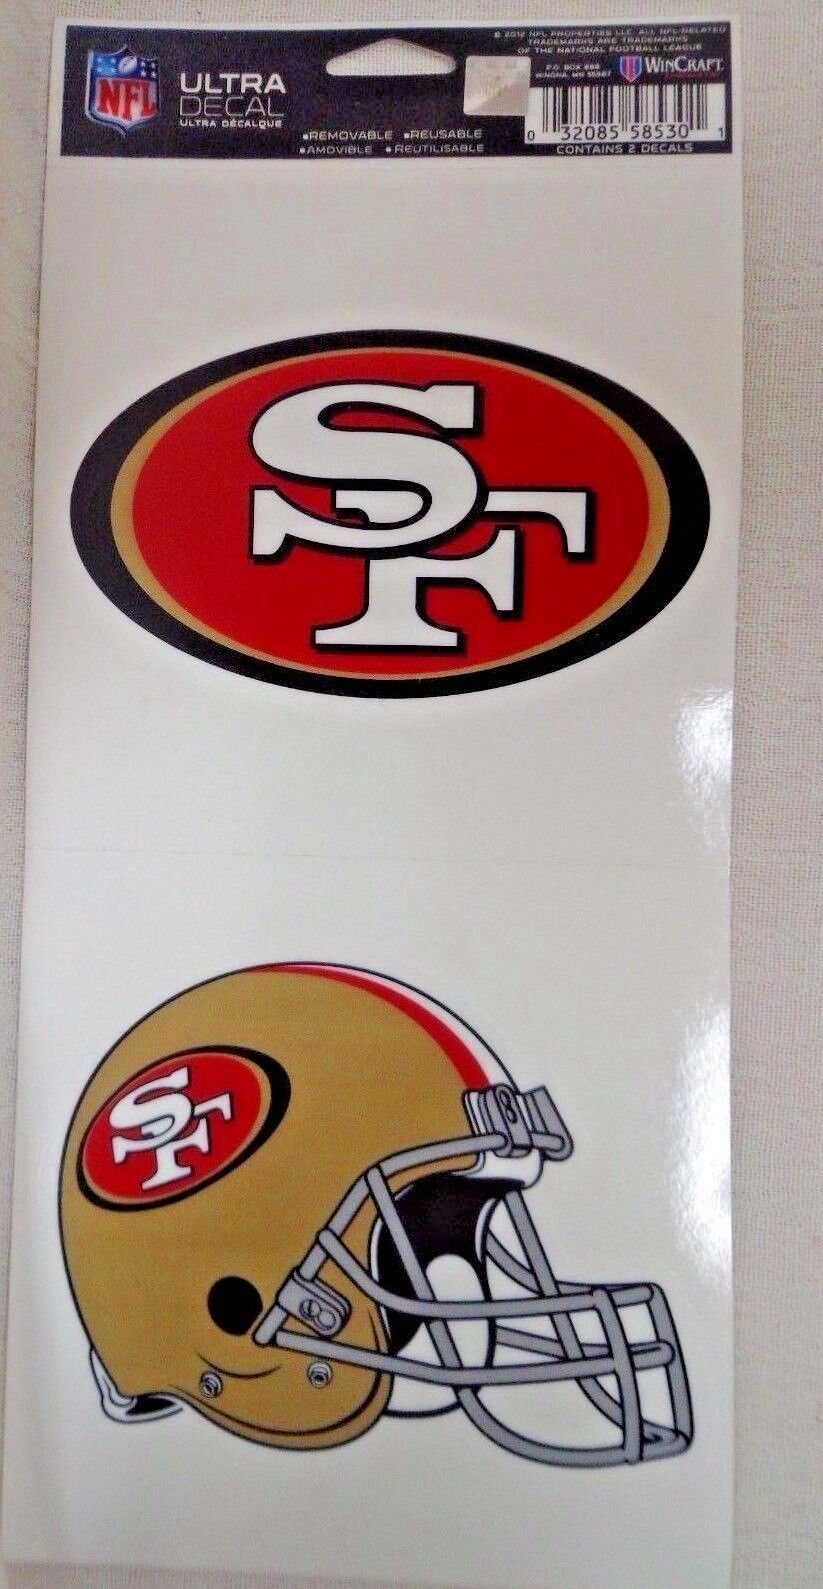 NFL Ultra Decals 2 Pack Set Removable Reusable Sticker Wincraft San Francisco 49ers